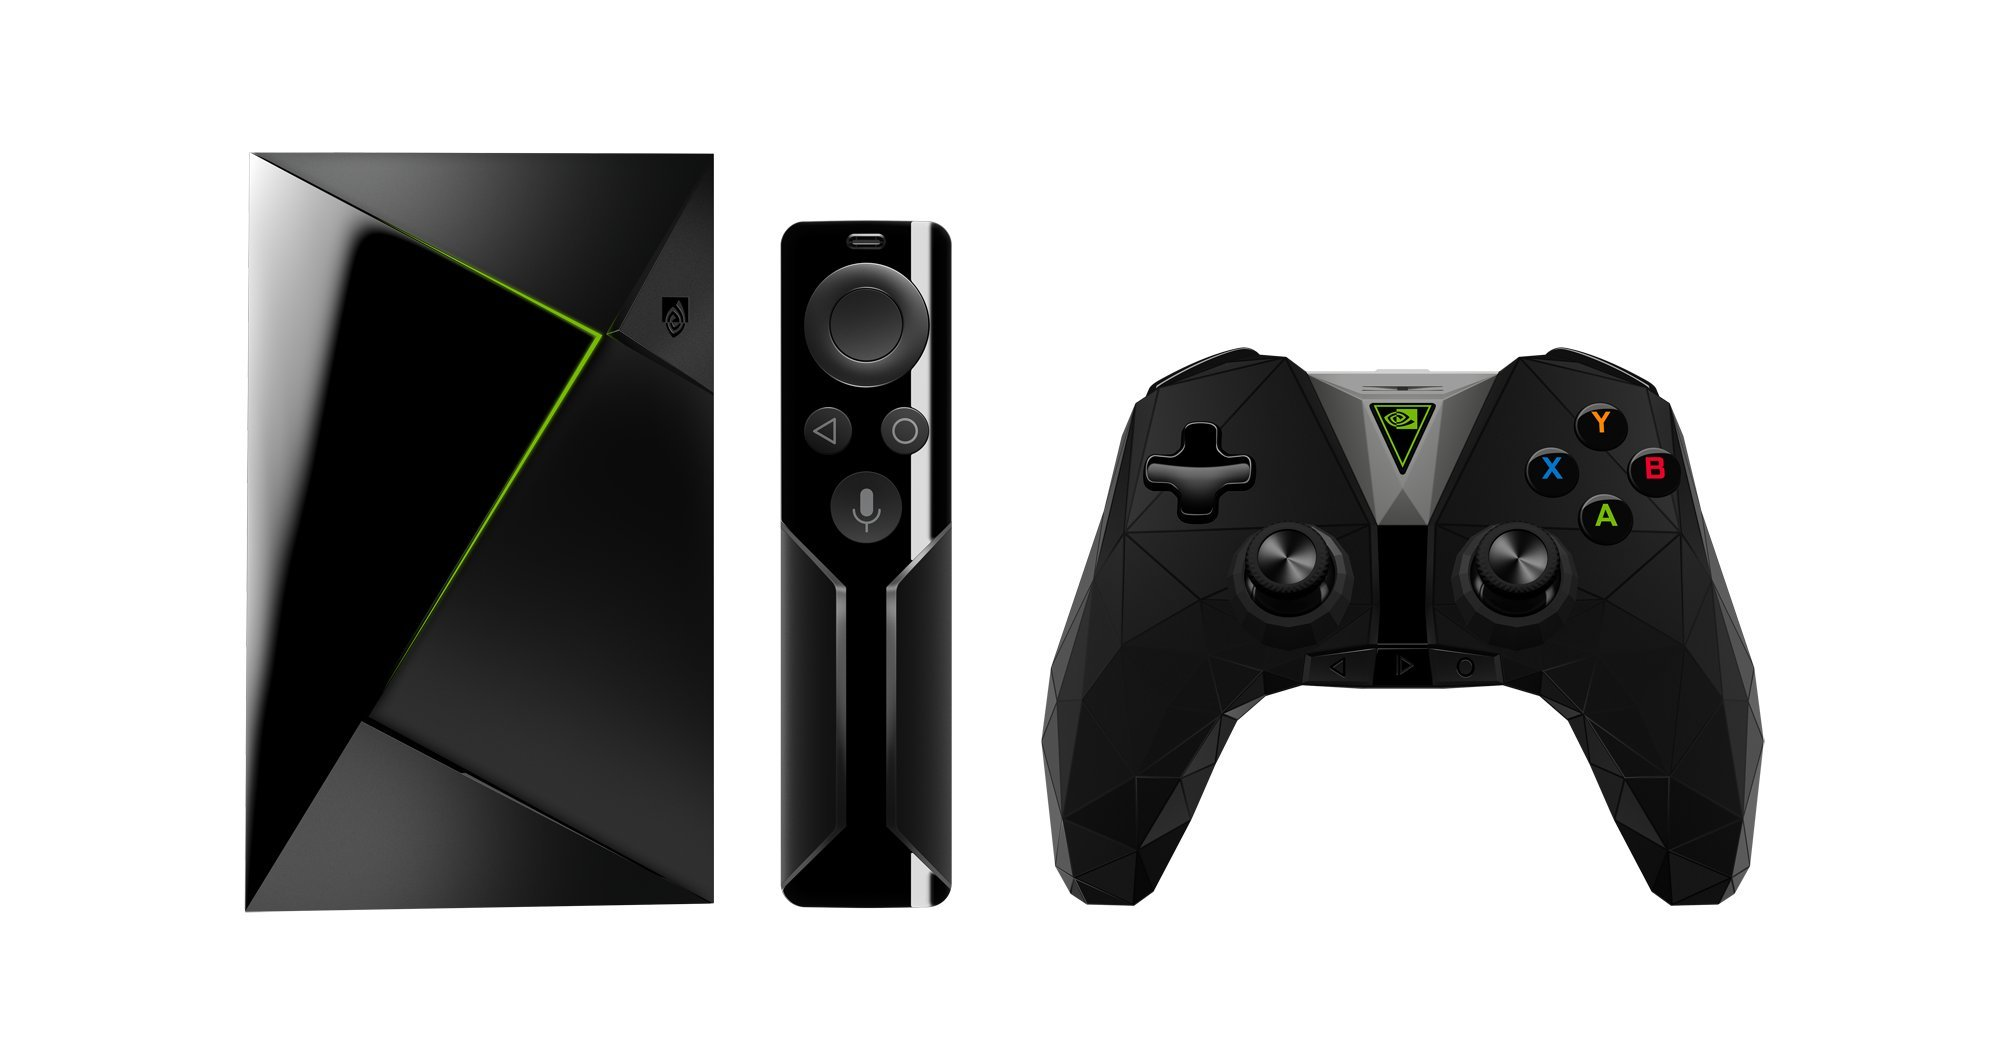 NVIDIA SHIELD TV | Streaming Media Player with Remote & Game Controller by NVIDIA